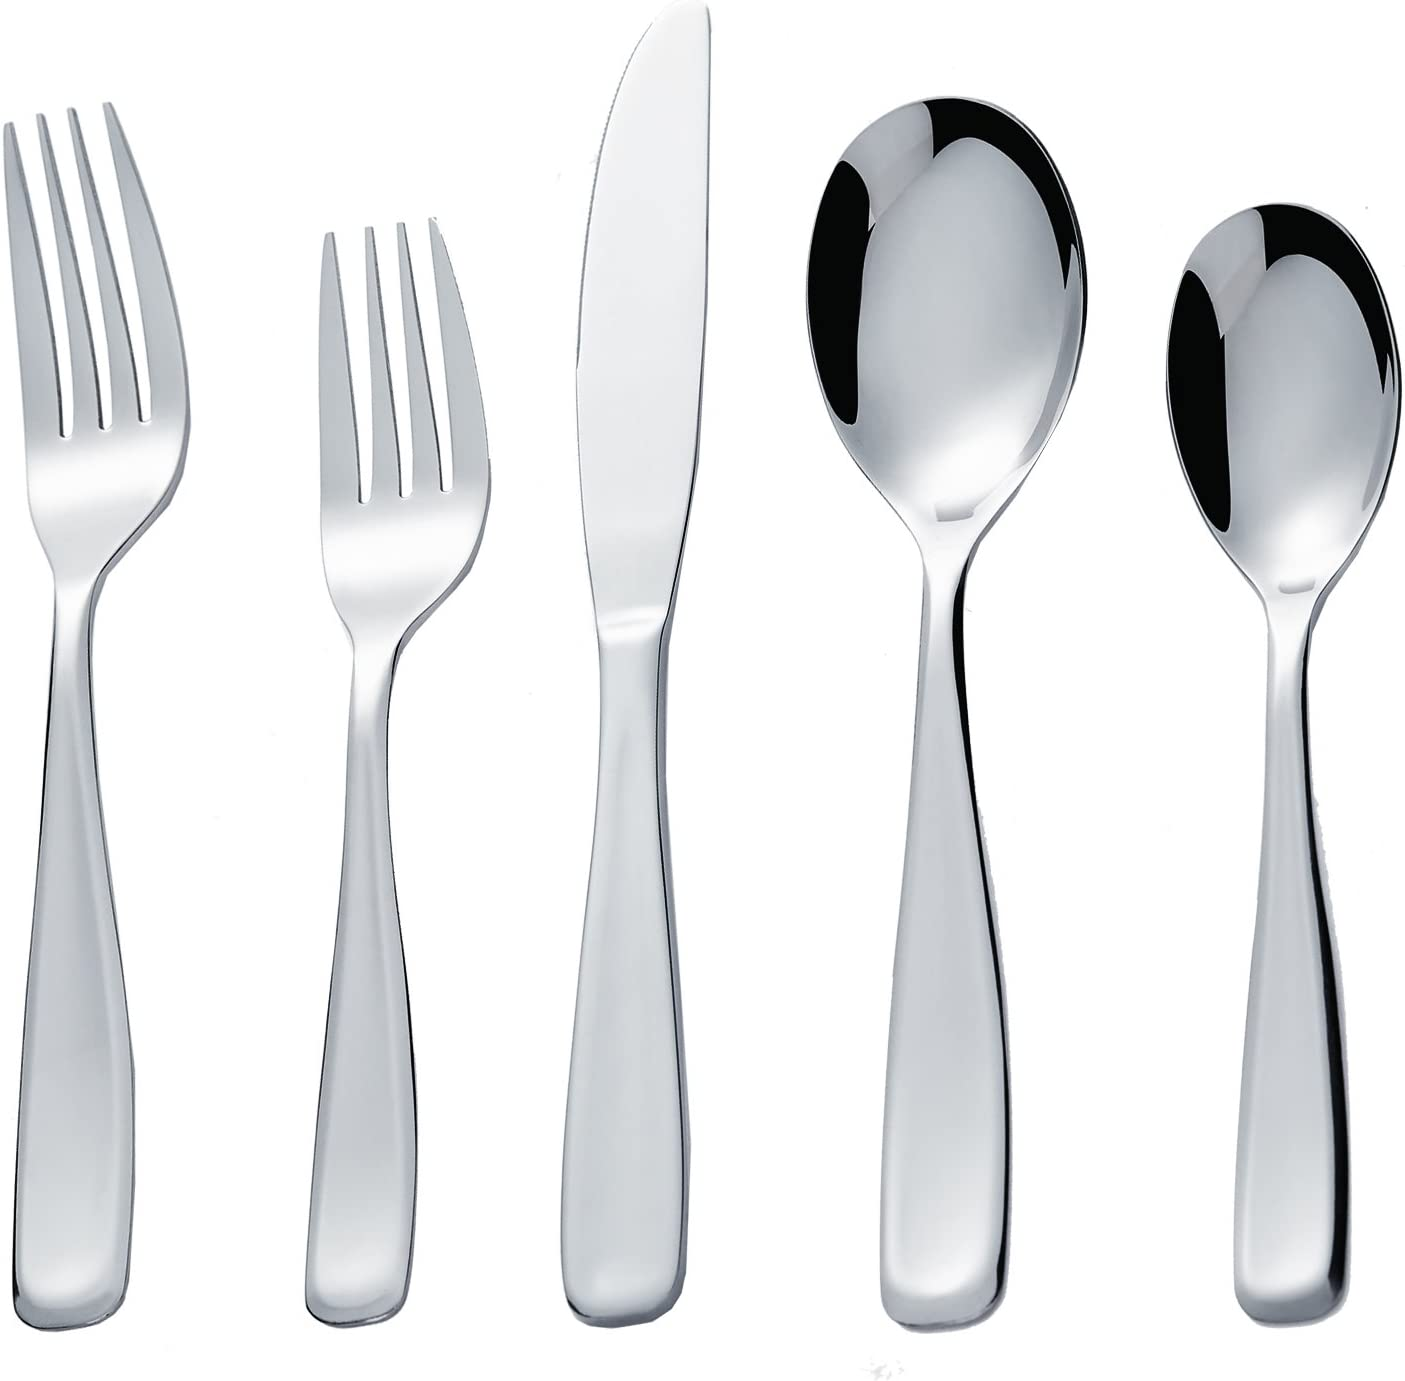 Bon Scoop 20-Piece Stainless Steel Flatware Silverware Cutlery Set, Include Knife/Fork/Spoon, Mirror Polished, Dishwasher Safe, Service for 4